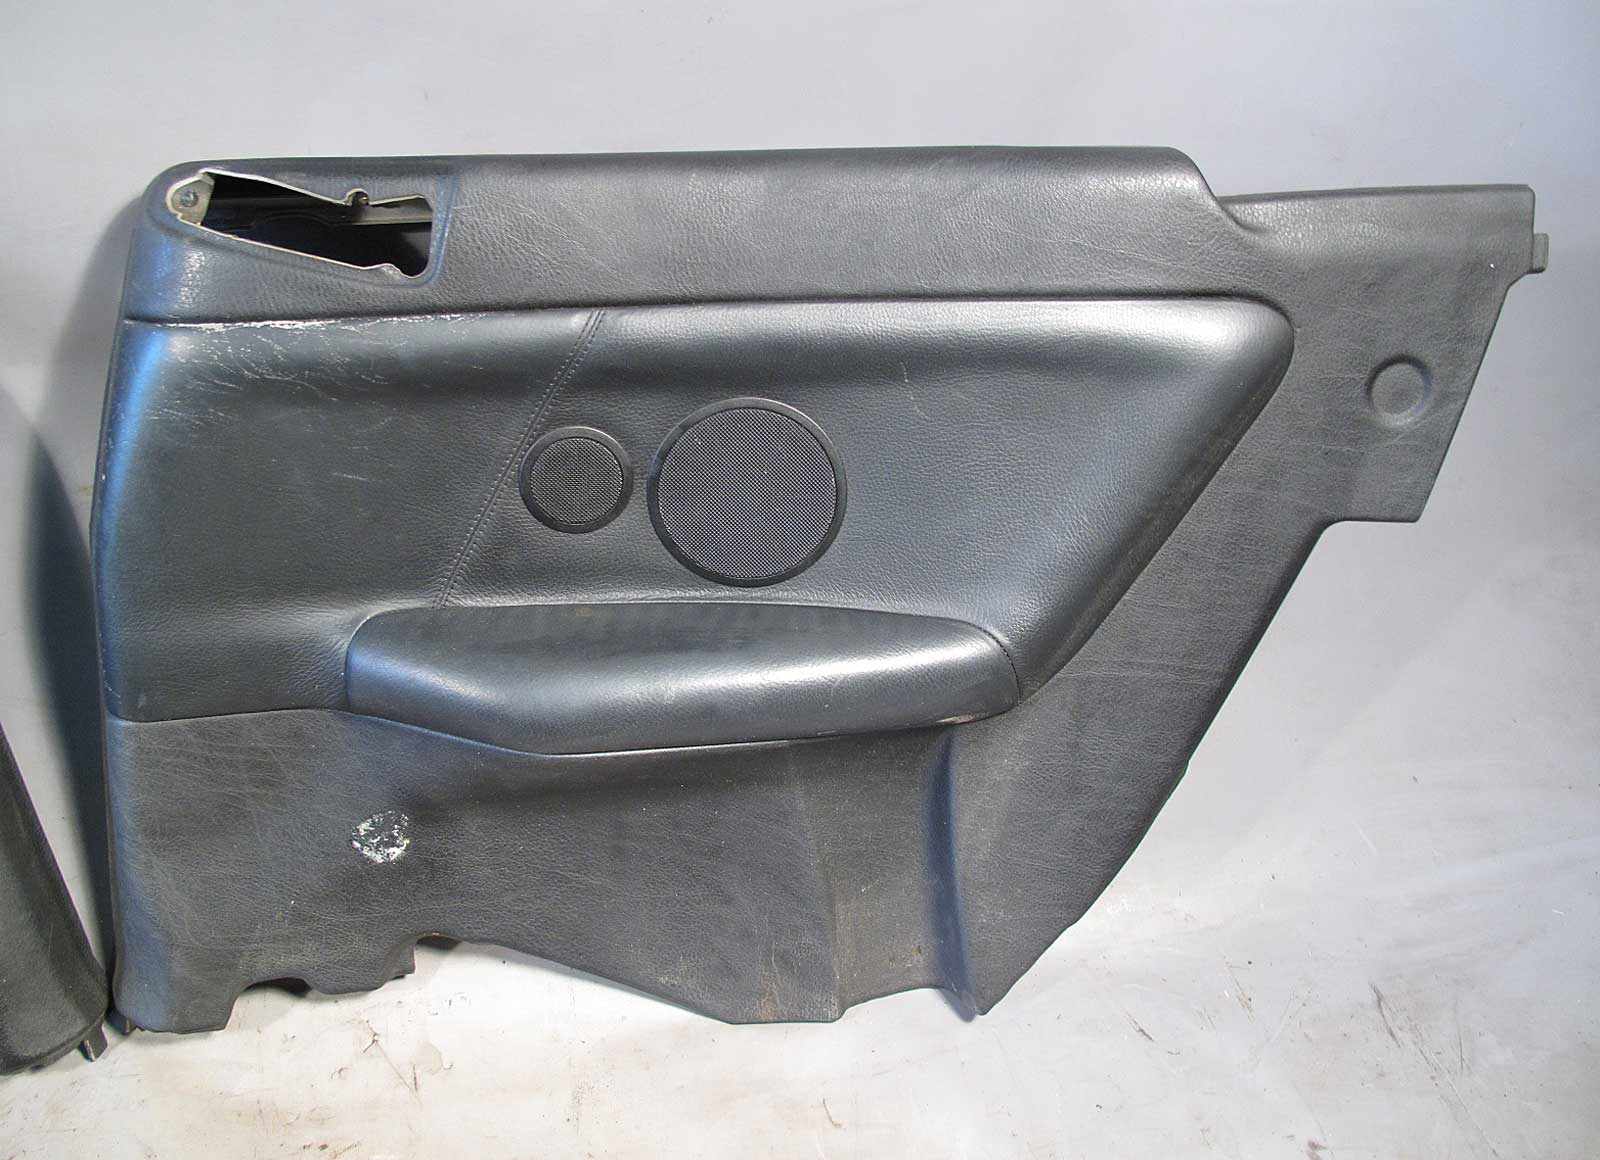 Bmw e36 3 series convertible rear interior trim panel pair black leather 1994 99 ebay for Mr trim convertible tops and interiors